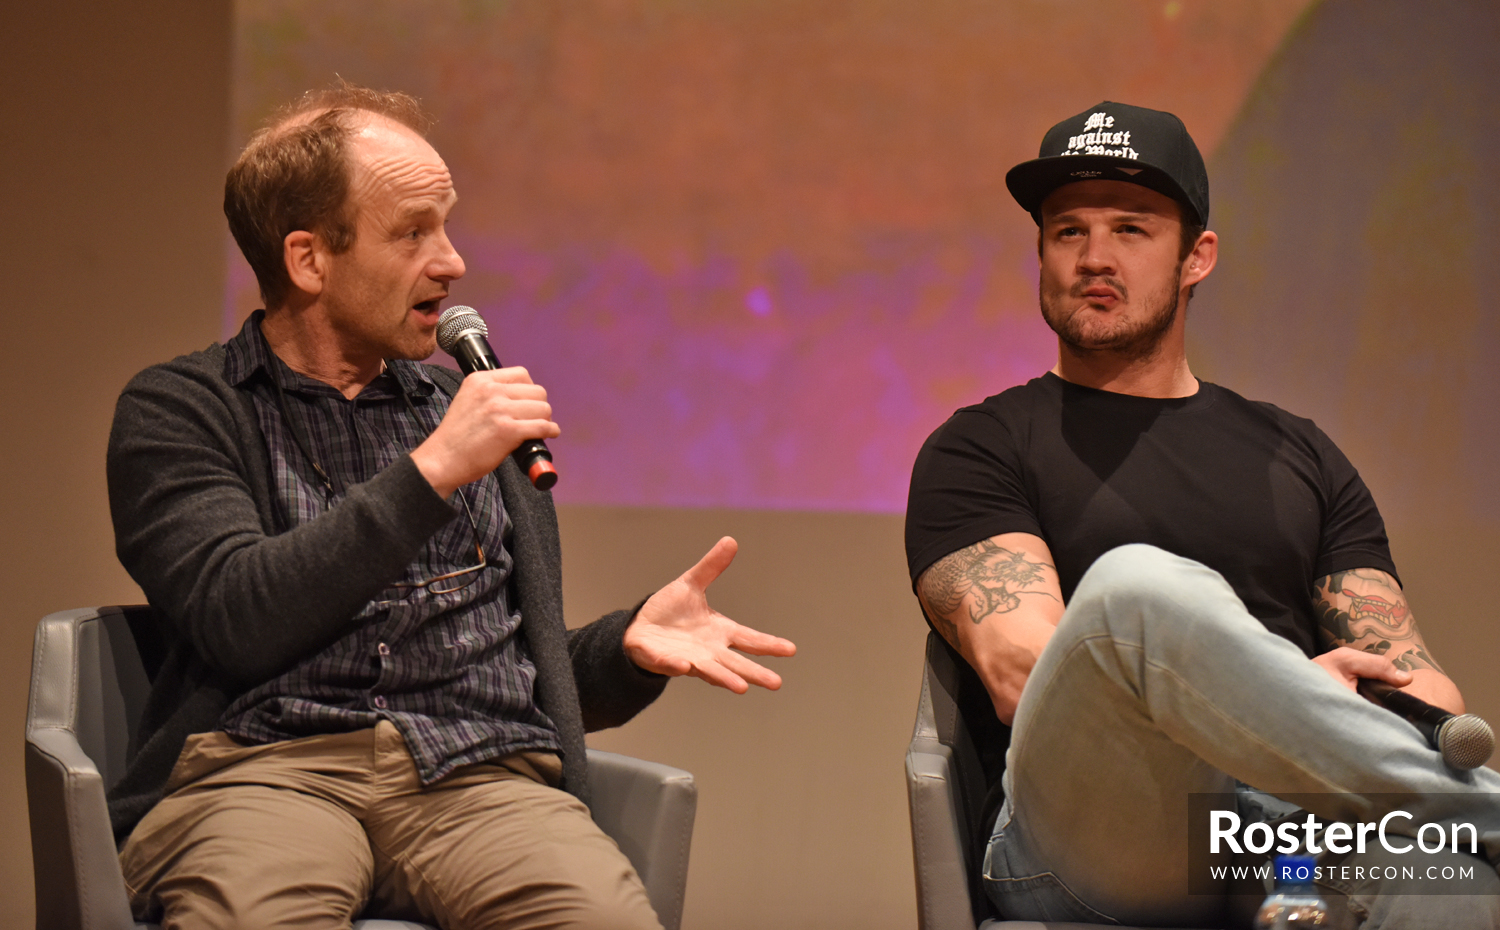 Panel Adrian Rawlins Josh Herdman Harry Potter Comic Con Paris 2018 Roster Con I've been training traditional japanese jujitsu for nearly. panel adrian rawlins josh herdman